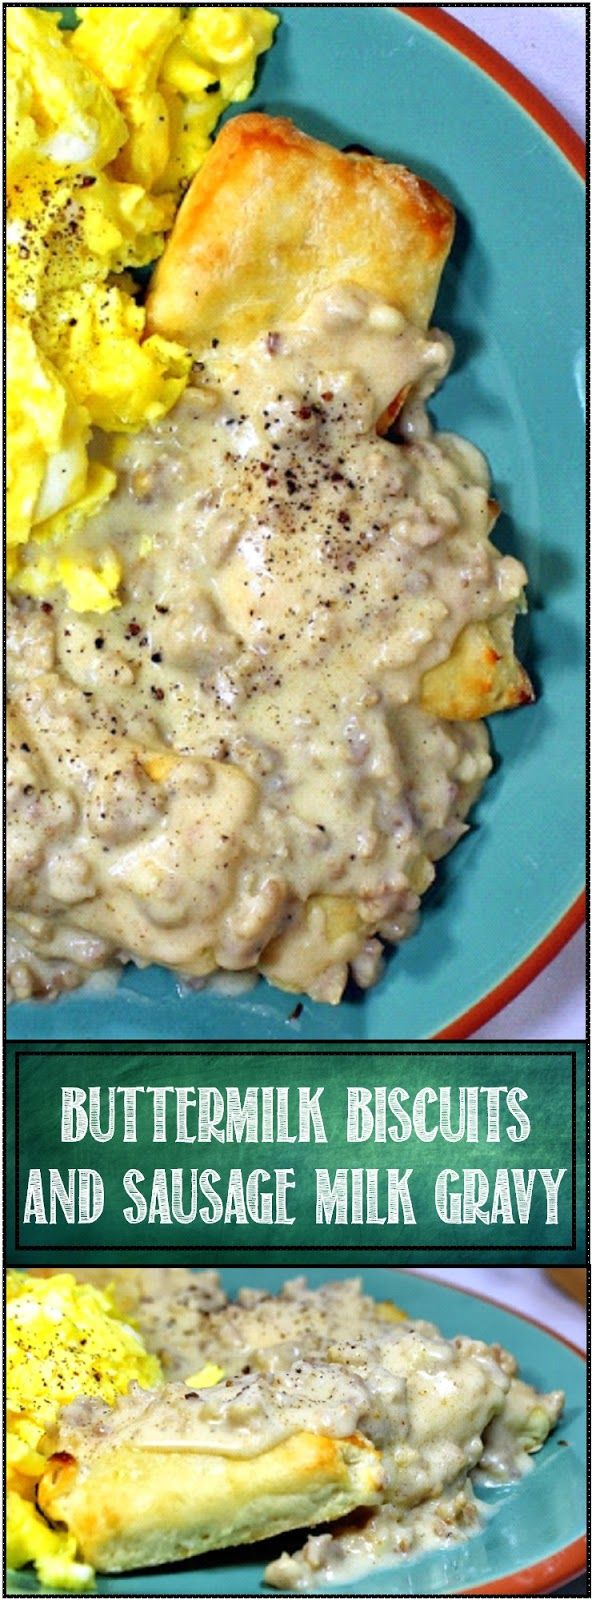 Buttermilk Biscuits and Sausage Milk Gravy -  It is FANTASTIC! The recipe is very easy to duplicate and has never failed me. Deliciously soft and flaky biscuits, tangy and flavorful gravy, just the right consistency and all OLD SCHOOL TASTINESS! Gravy and biscuit recipe in this pin! EASY, FAST and DELICIOUS!!!